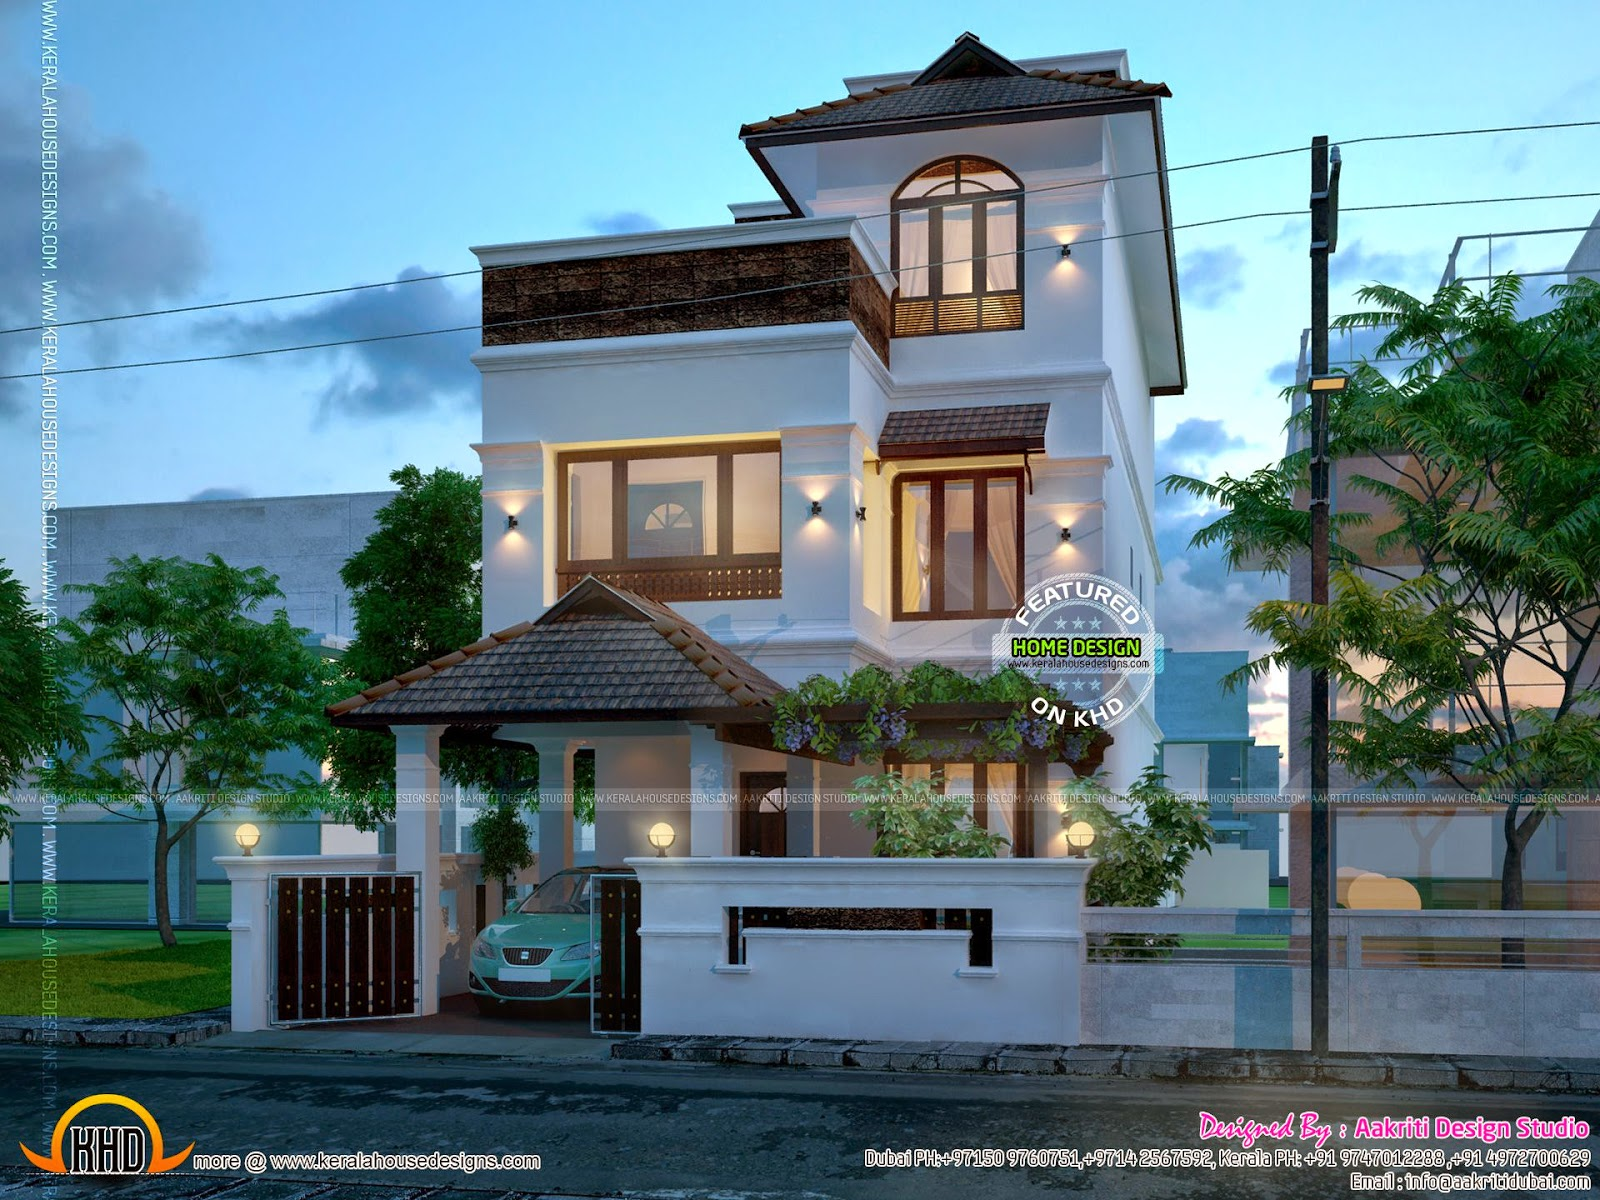 New house design kerala home design and floor plans New home design plans